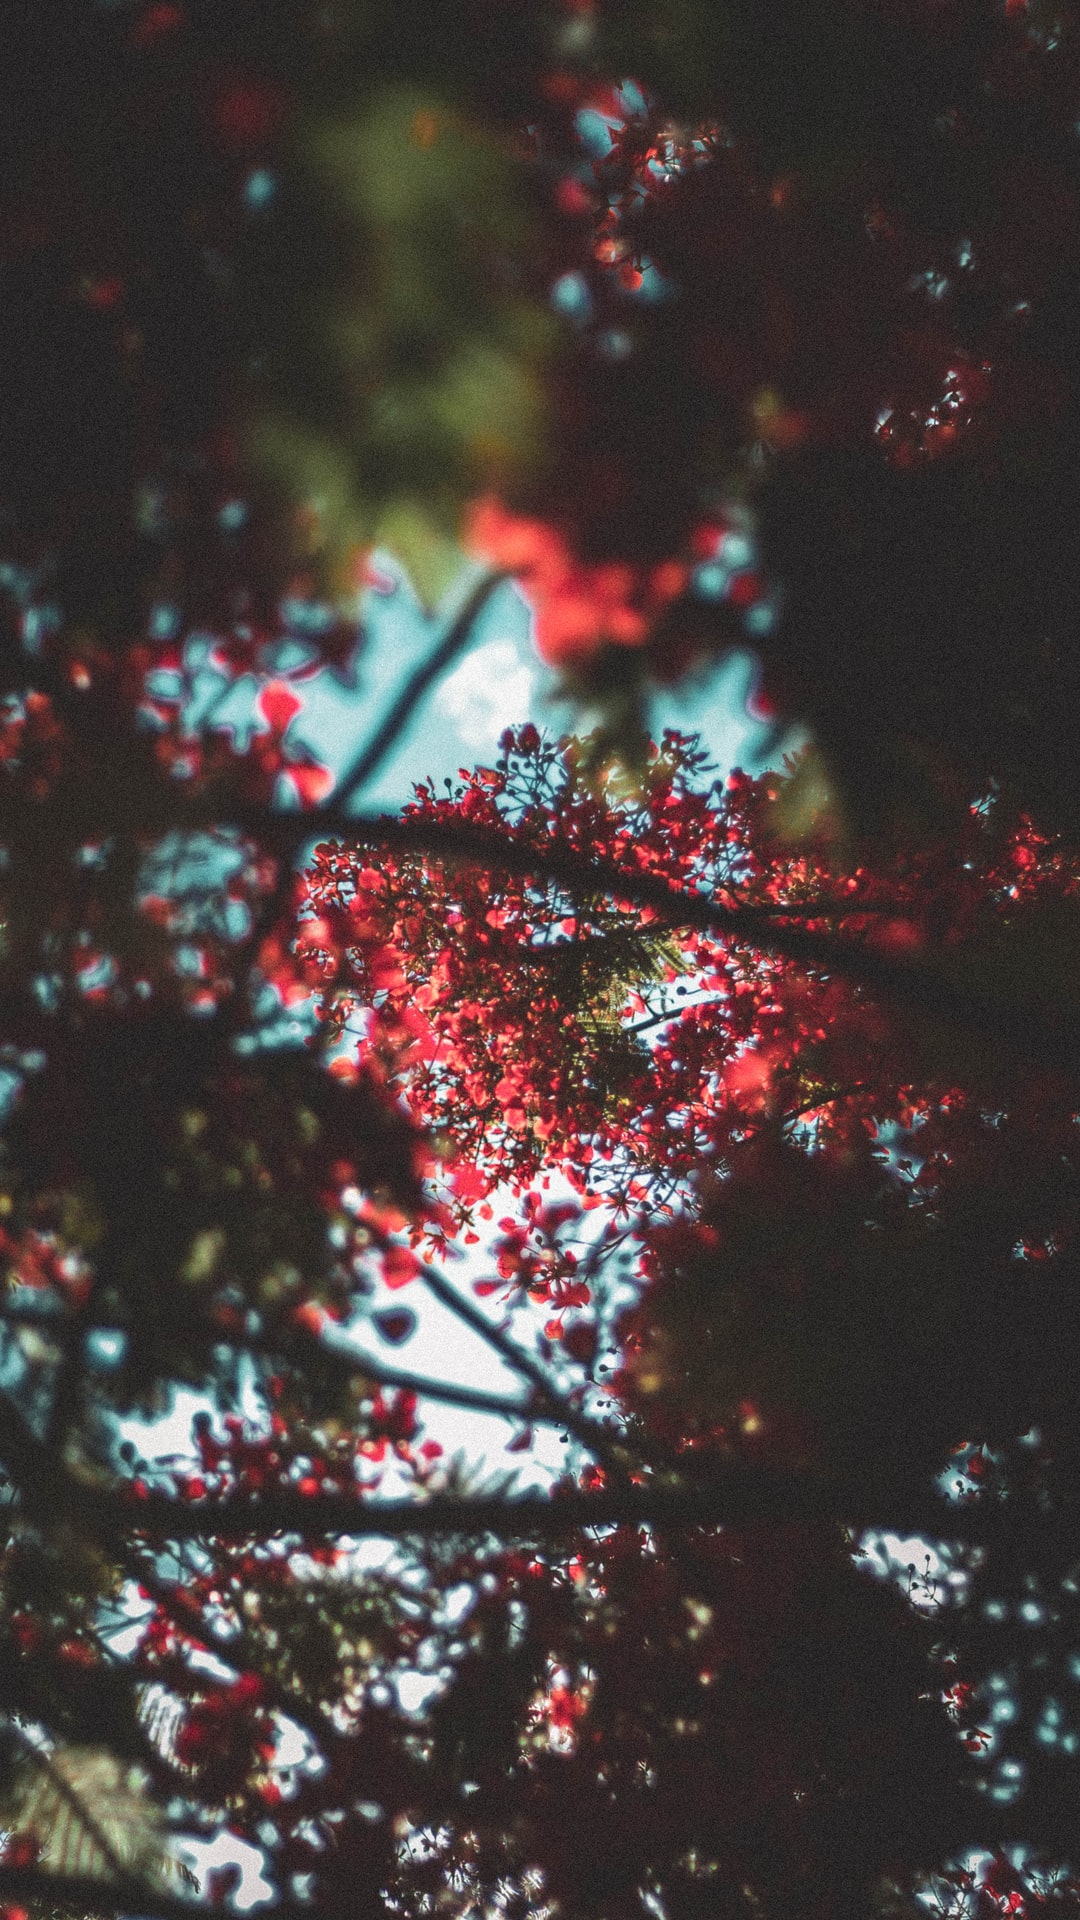 Out of focus Flamboyant branches